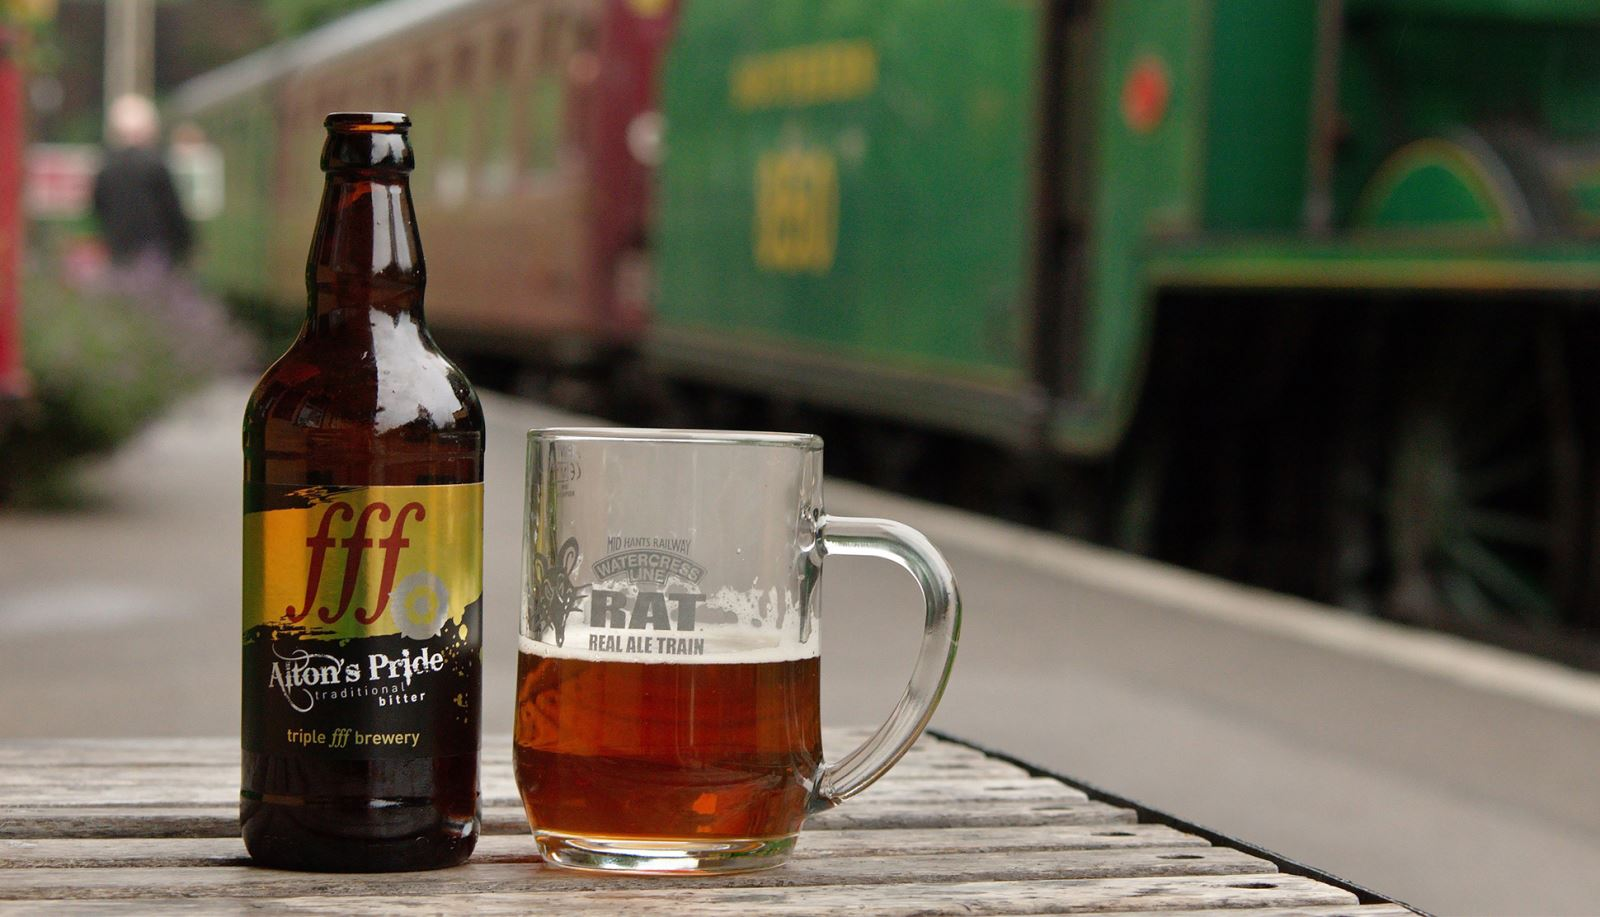 Watercress Line - RAT - Real Ale Train - Hampshire MicroGap